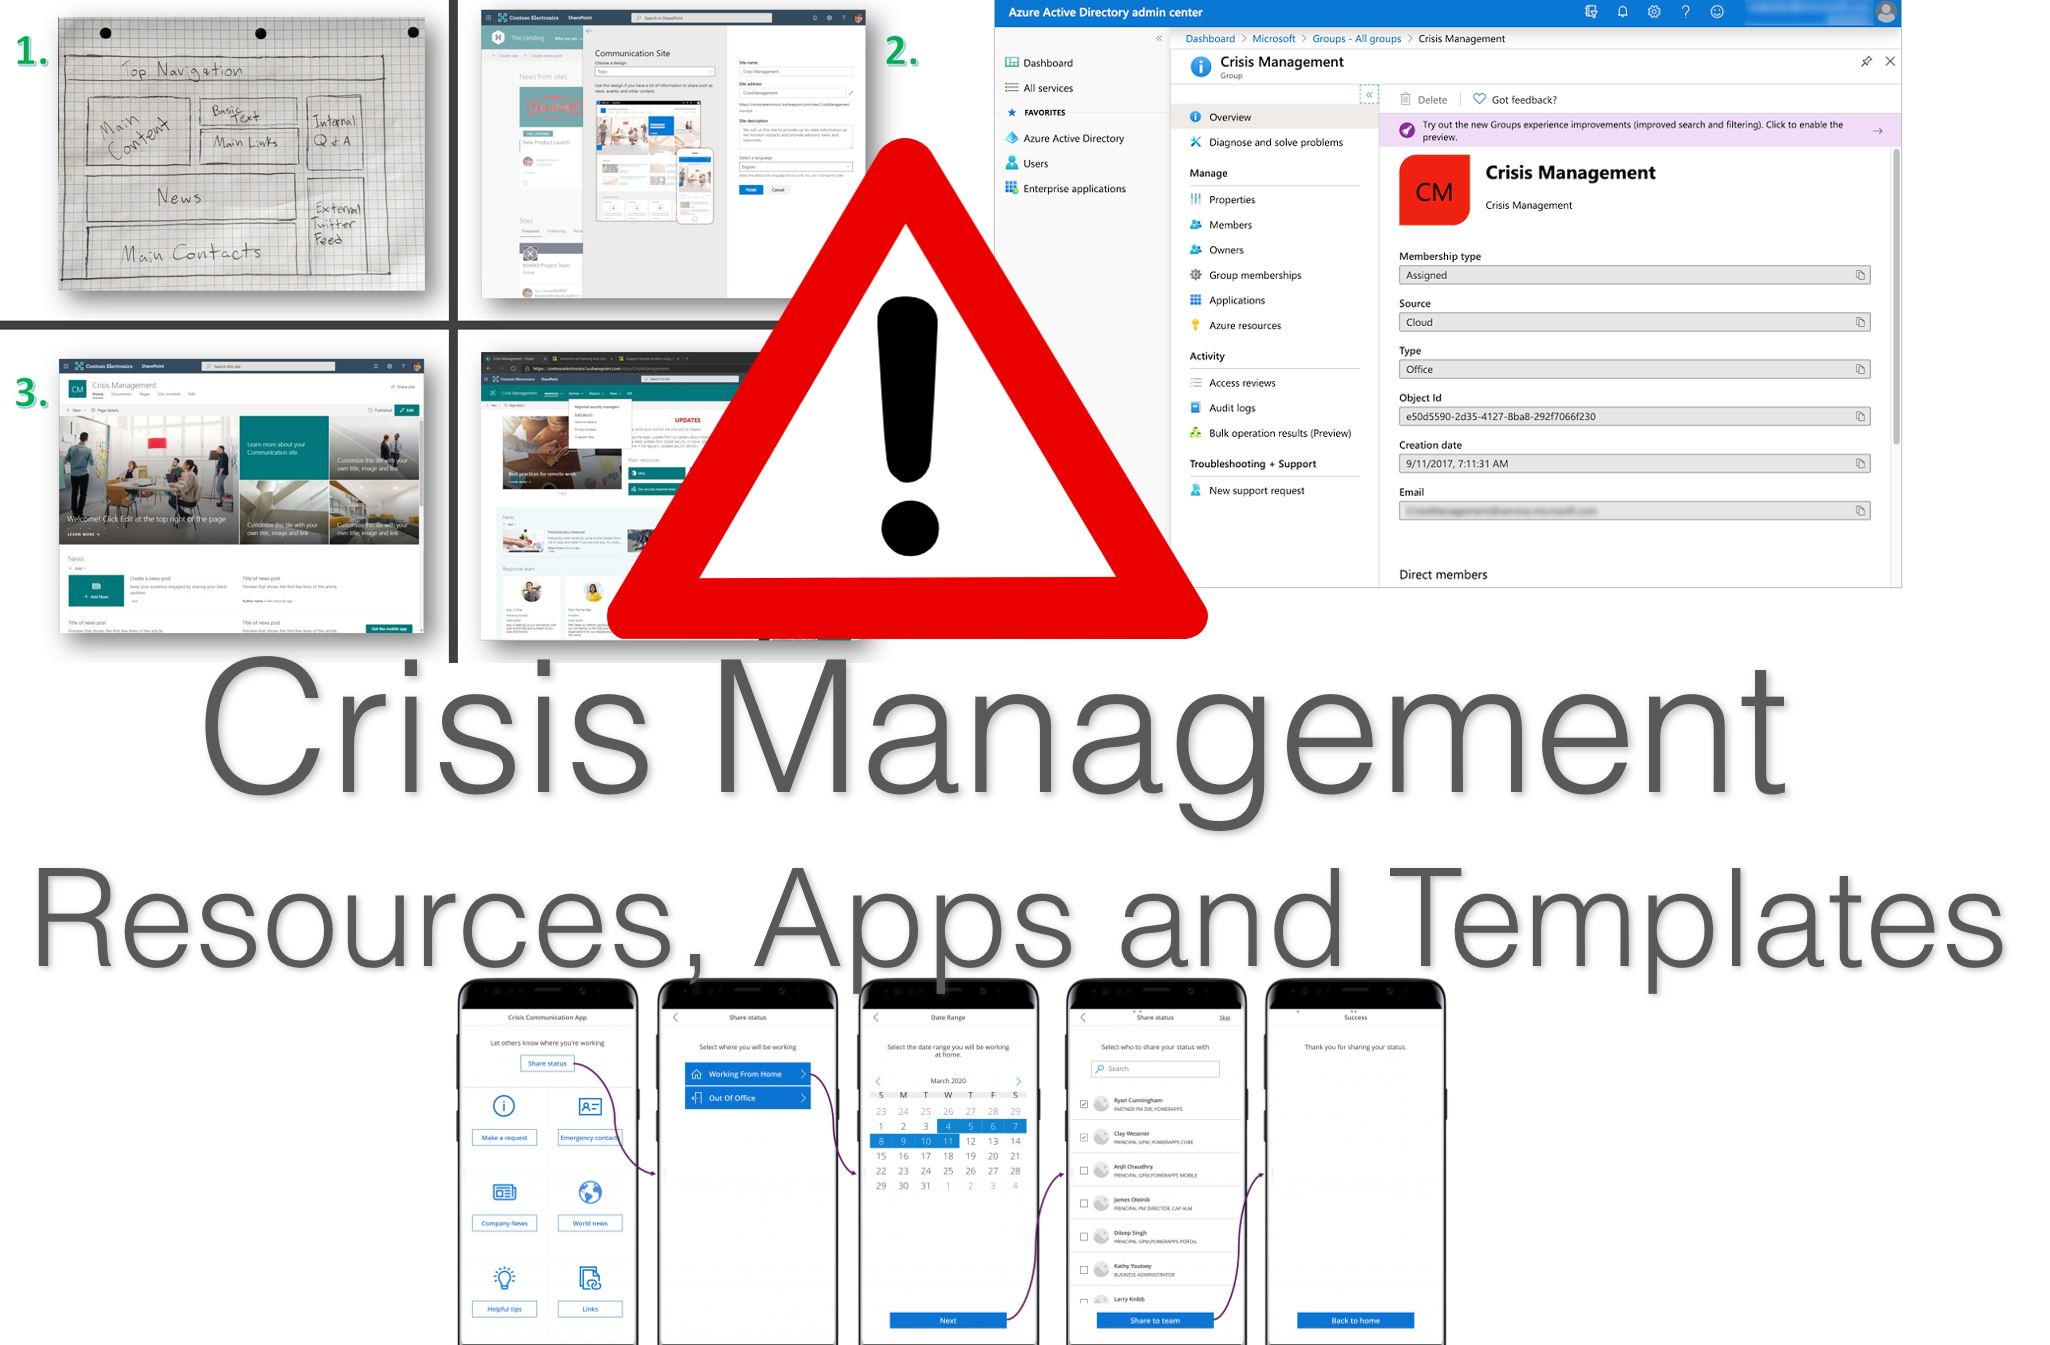 Microsoft Crisis Management Response Templates and Remote Work Resources for Coronavirus #Covid19